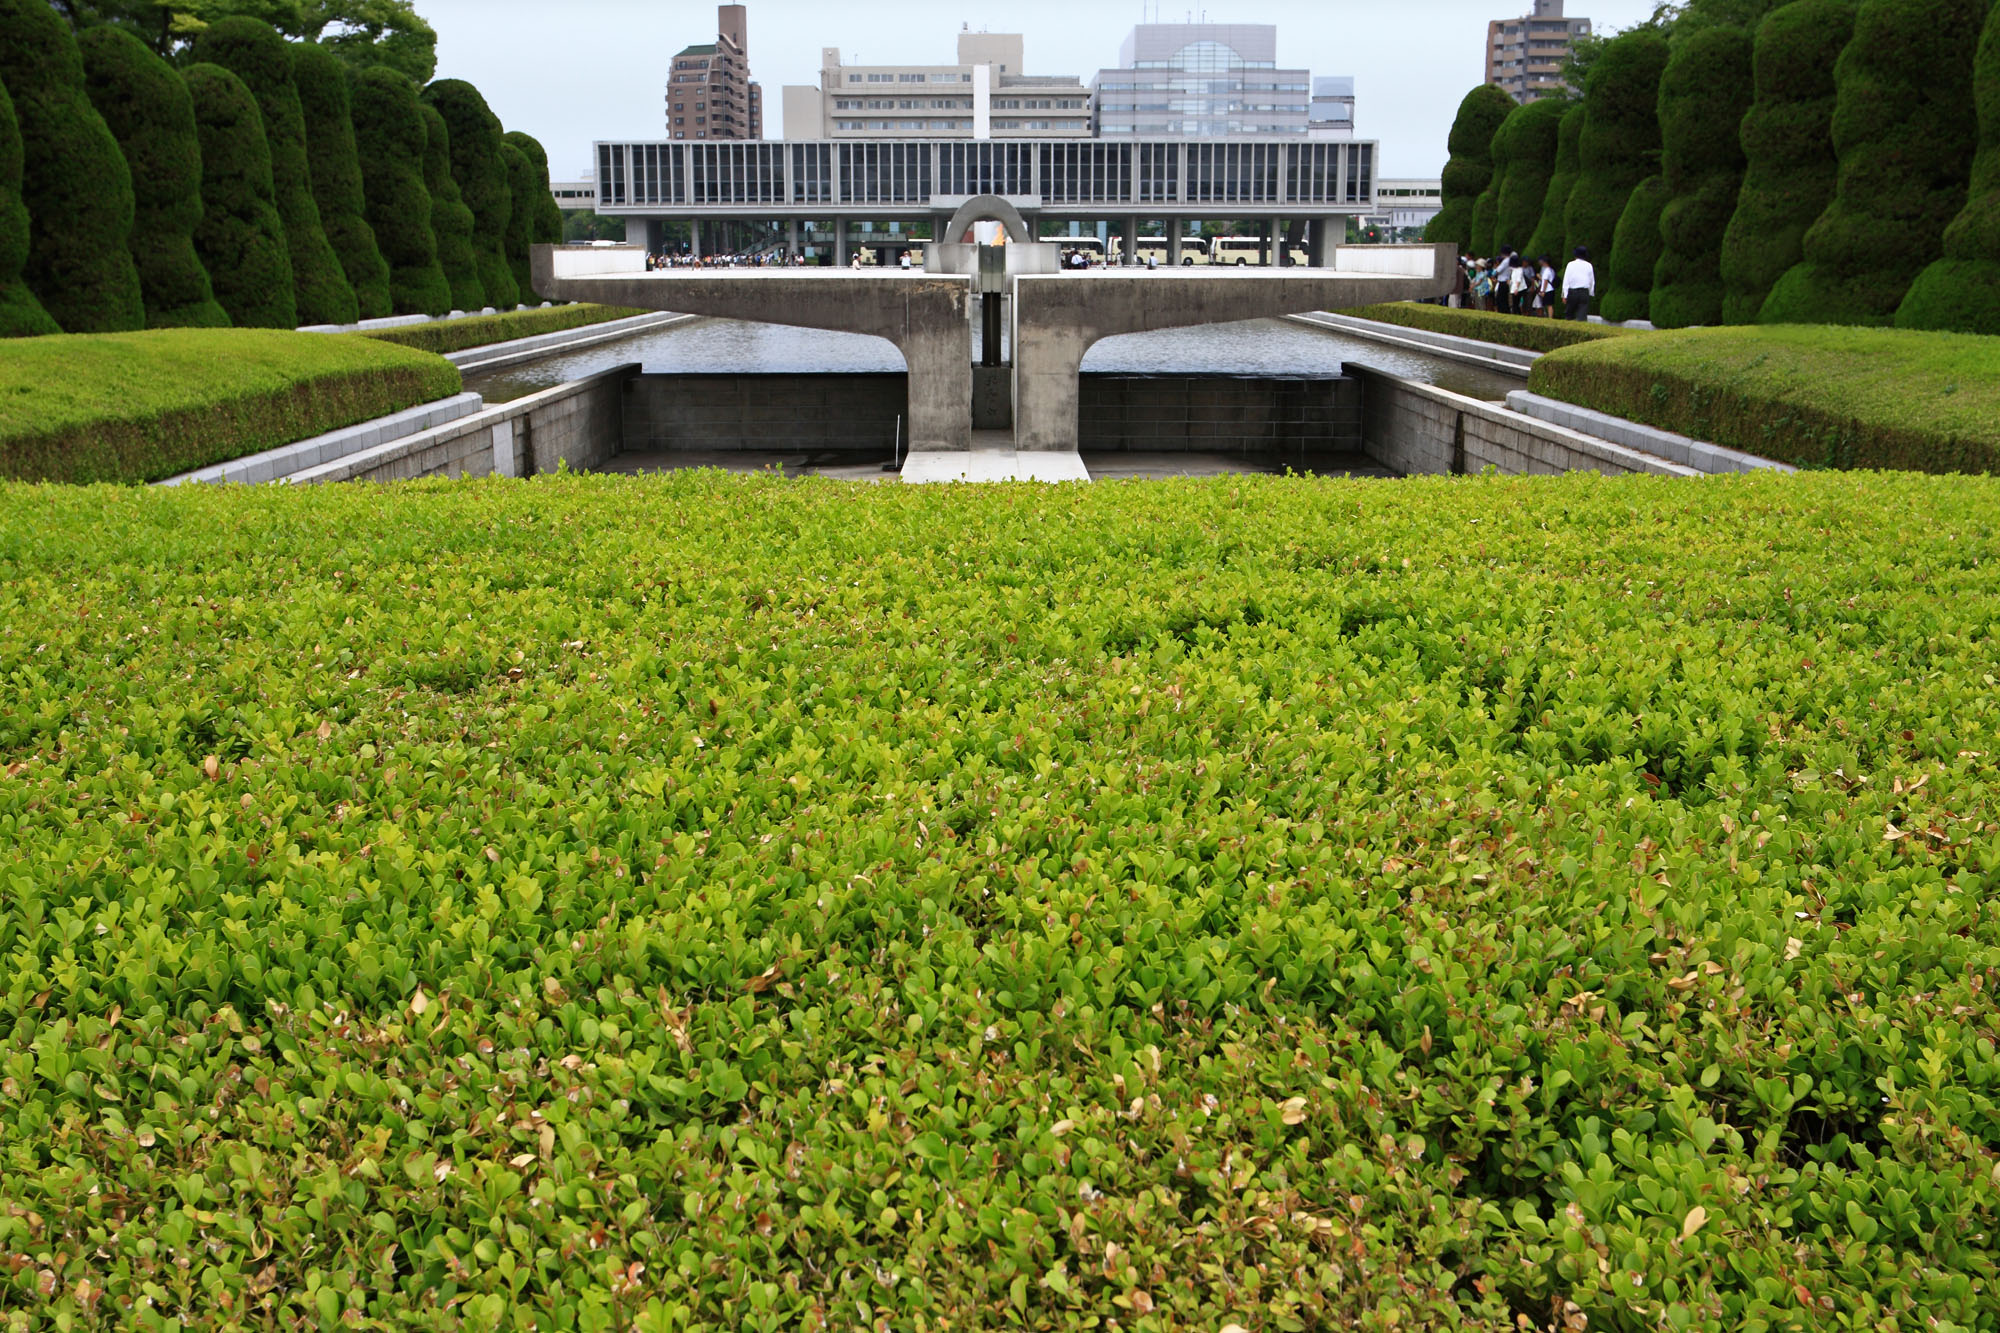 Touch up: The Hiroshima Peace Memorial Museum recently underwent renovations to improve the way its main exhibition is presented. | GETTY IMAGES